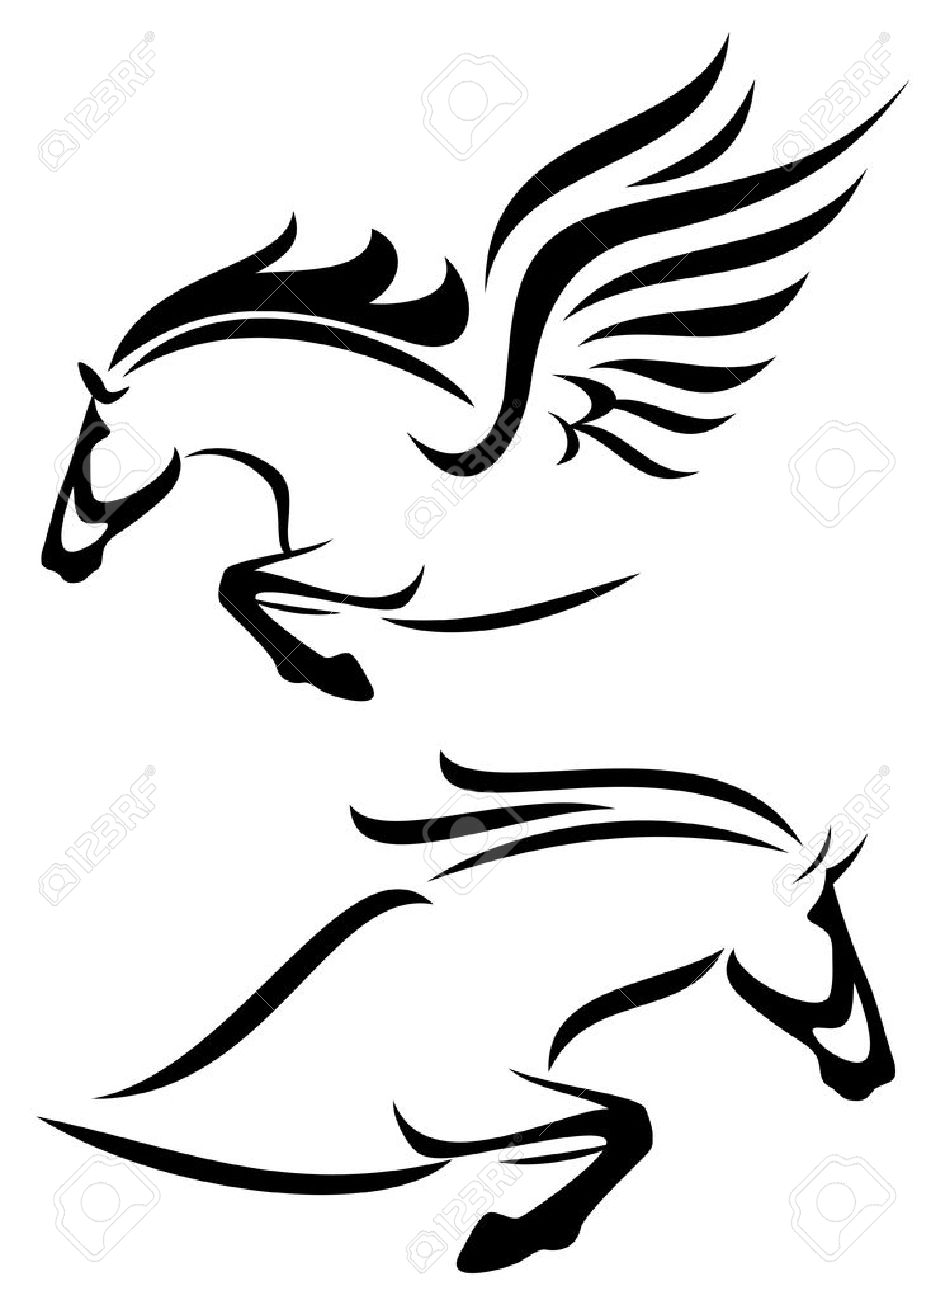 black and white outlines of jumping horse and pegasus royalty free rh 123rf com pegasus clipart black and white pegasus wings clipart